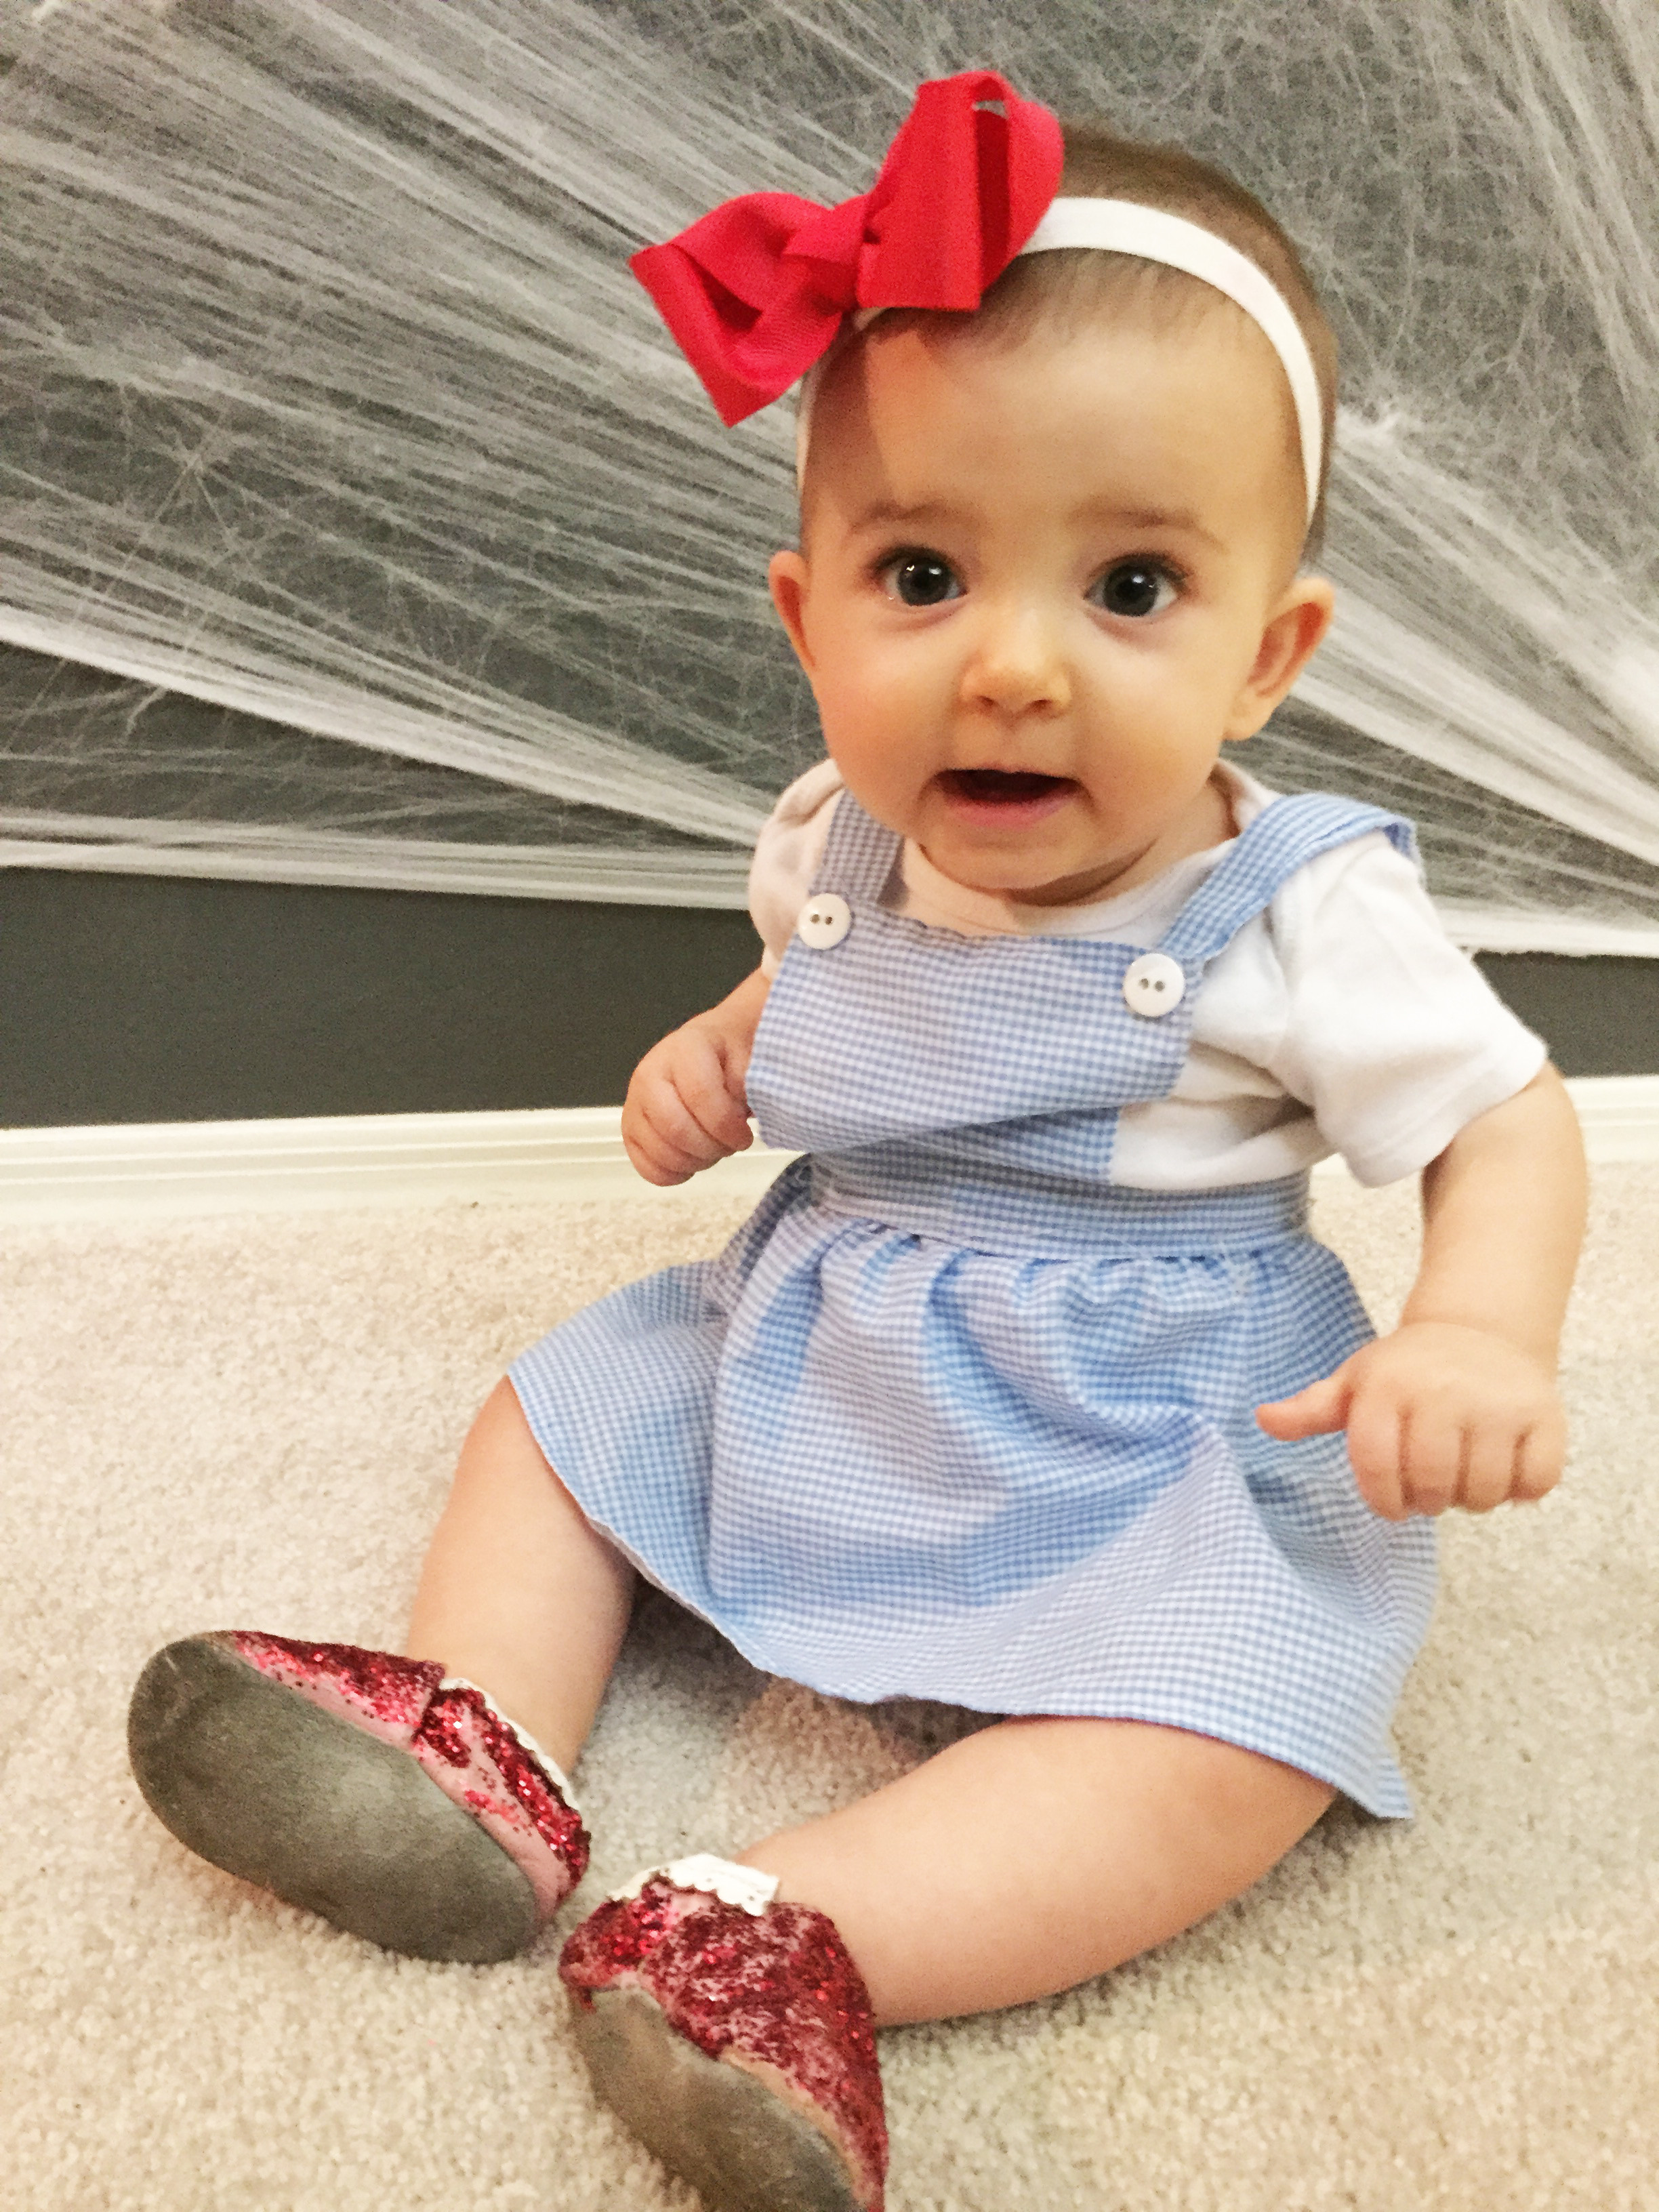 Best ideas about DIY Baby Costume . Save or Pin DIY Family Halloween Costume Ideas A Happier Home Now.